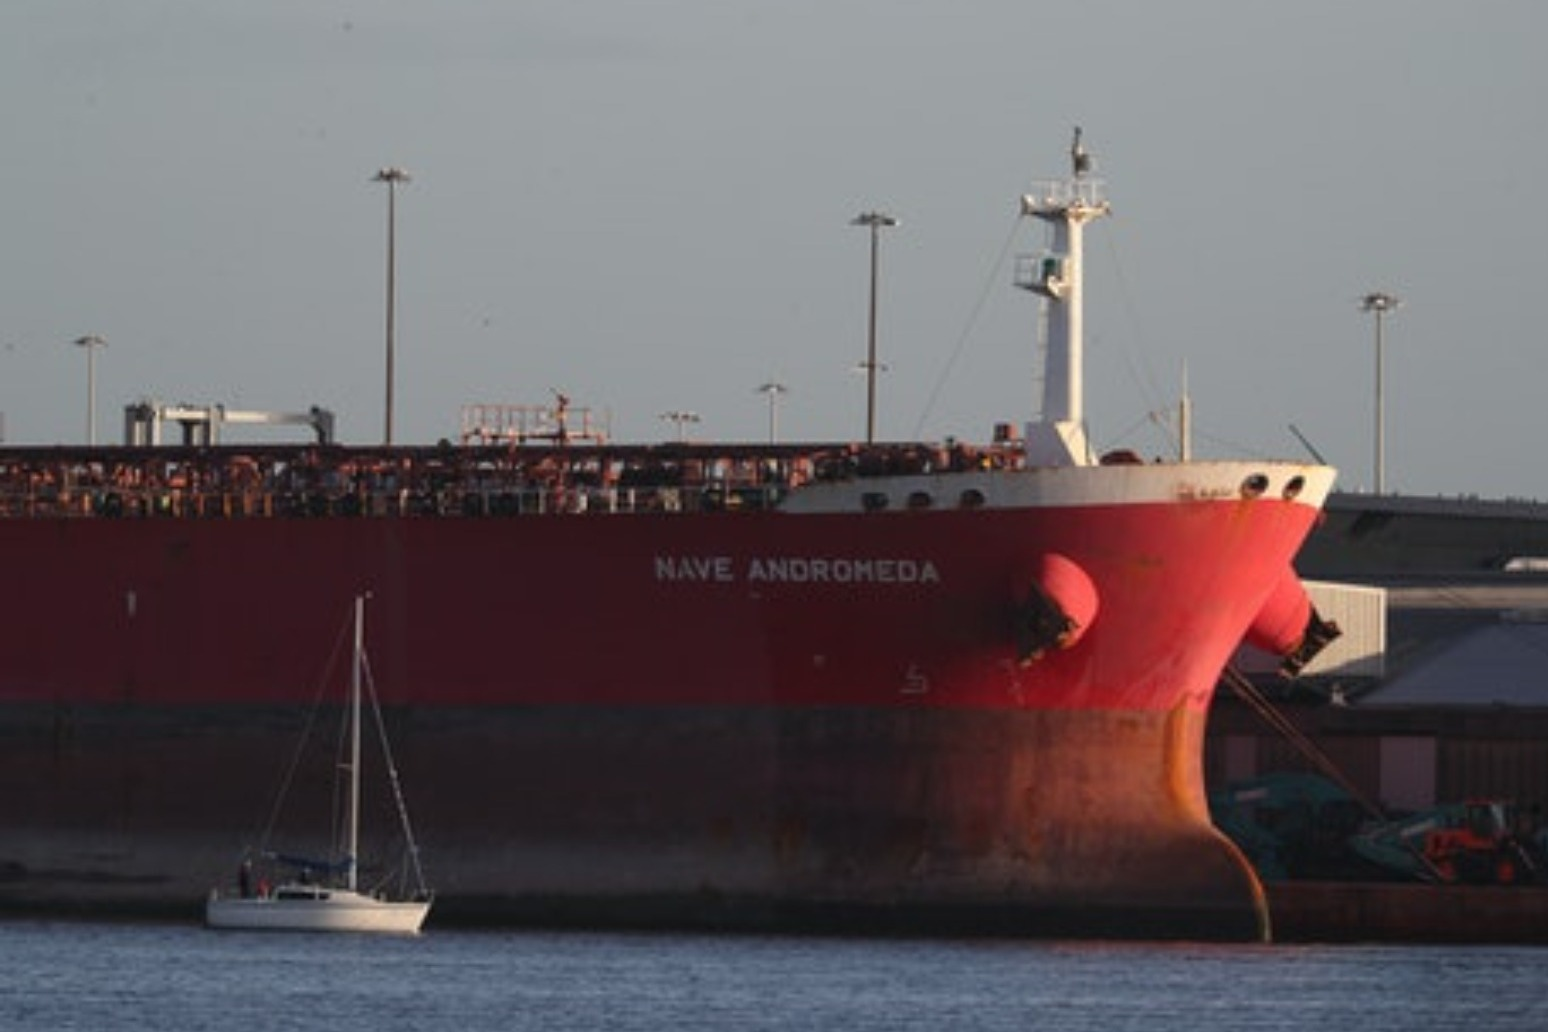 Armed forces storm oil tanker and detain stowaways after 'hijacking'